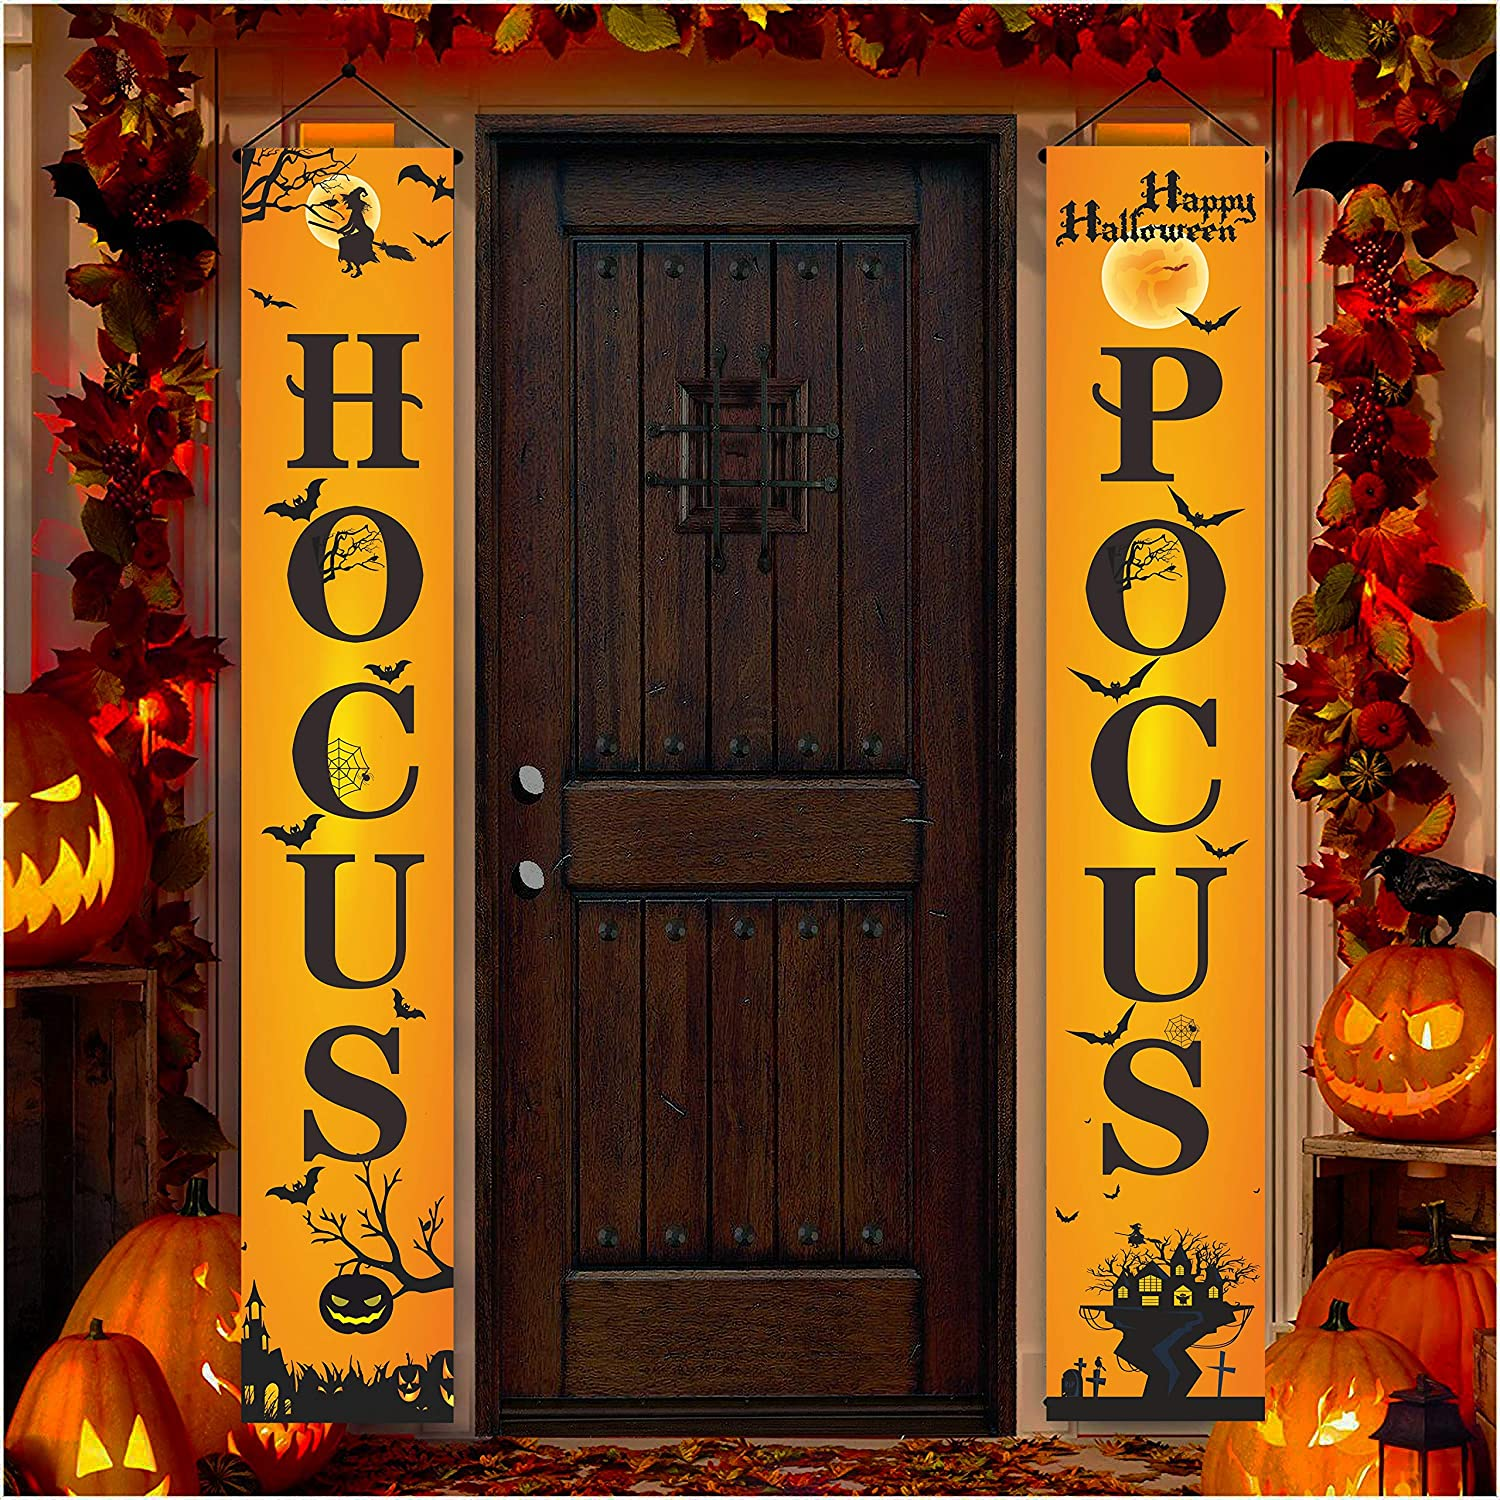 Buildinest Hocus Pocus Banners Porch Signs - Halloween Decorations, Witch Decor for Home Front Door Outside Yard Garden Party – 1 Set (HSPS)